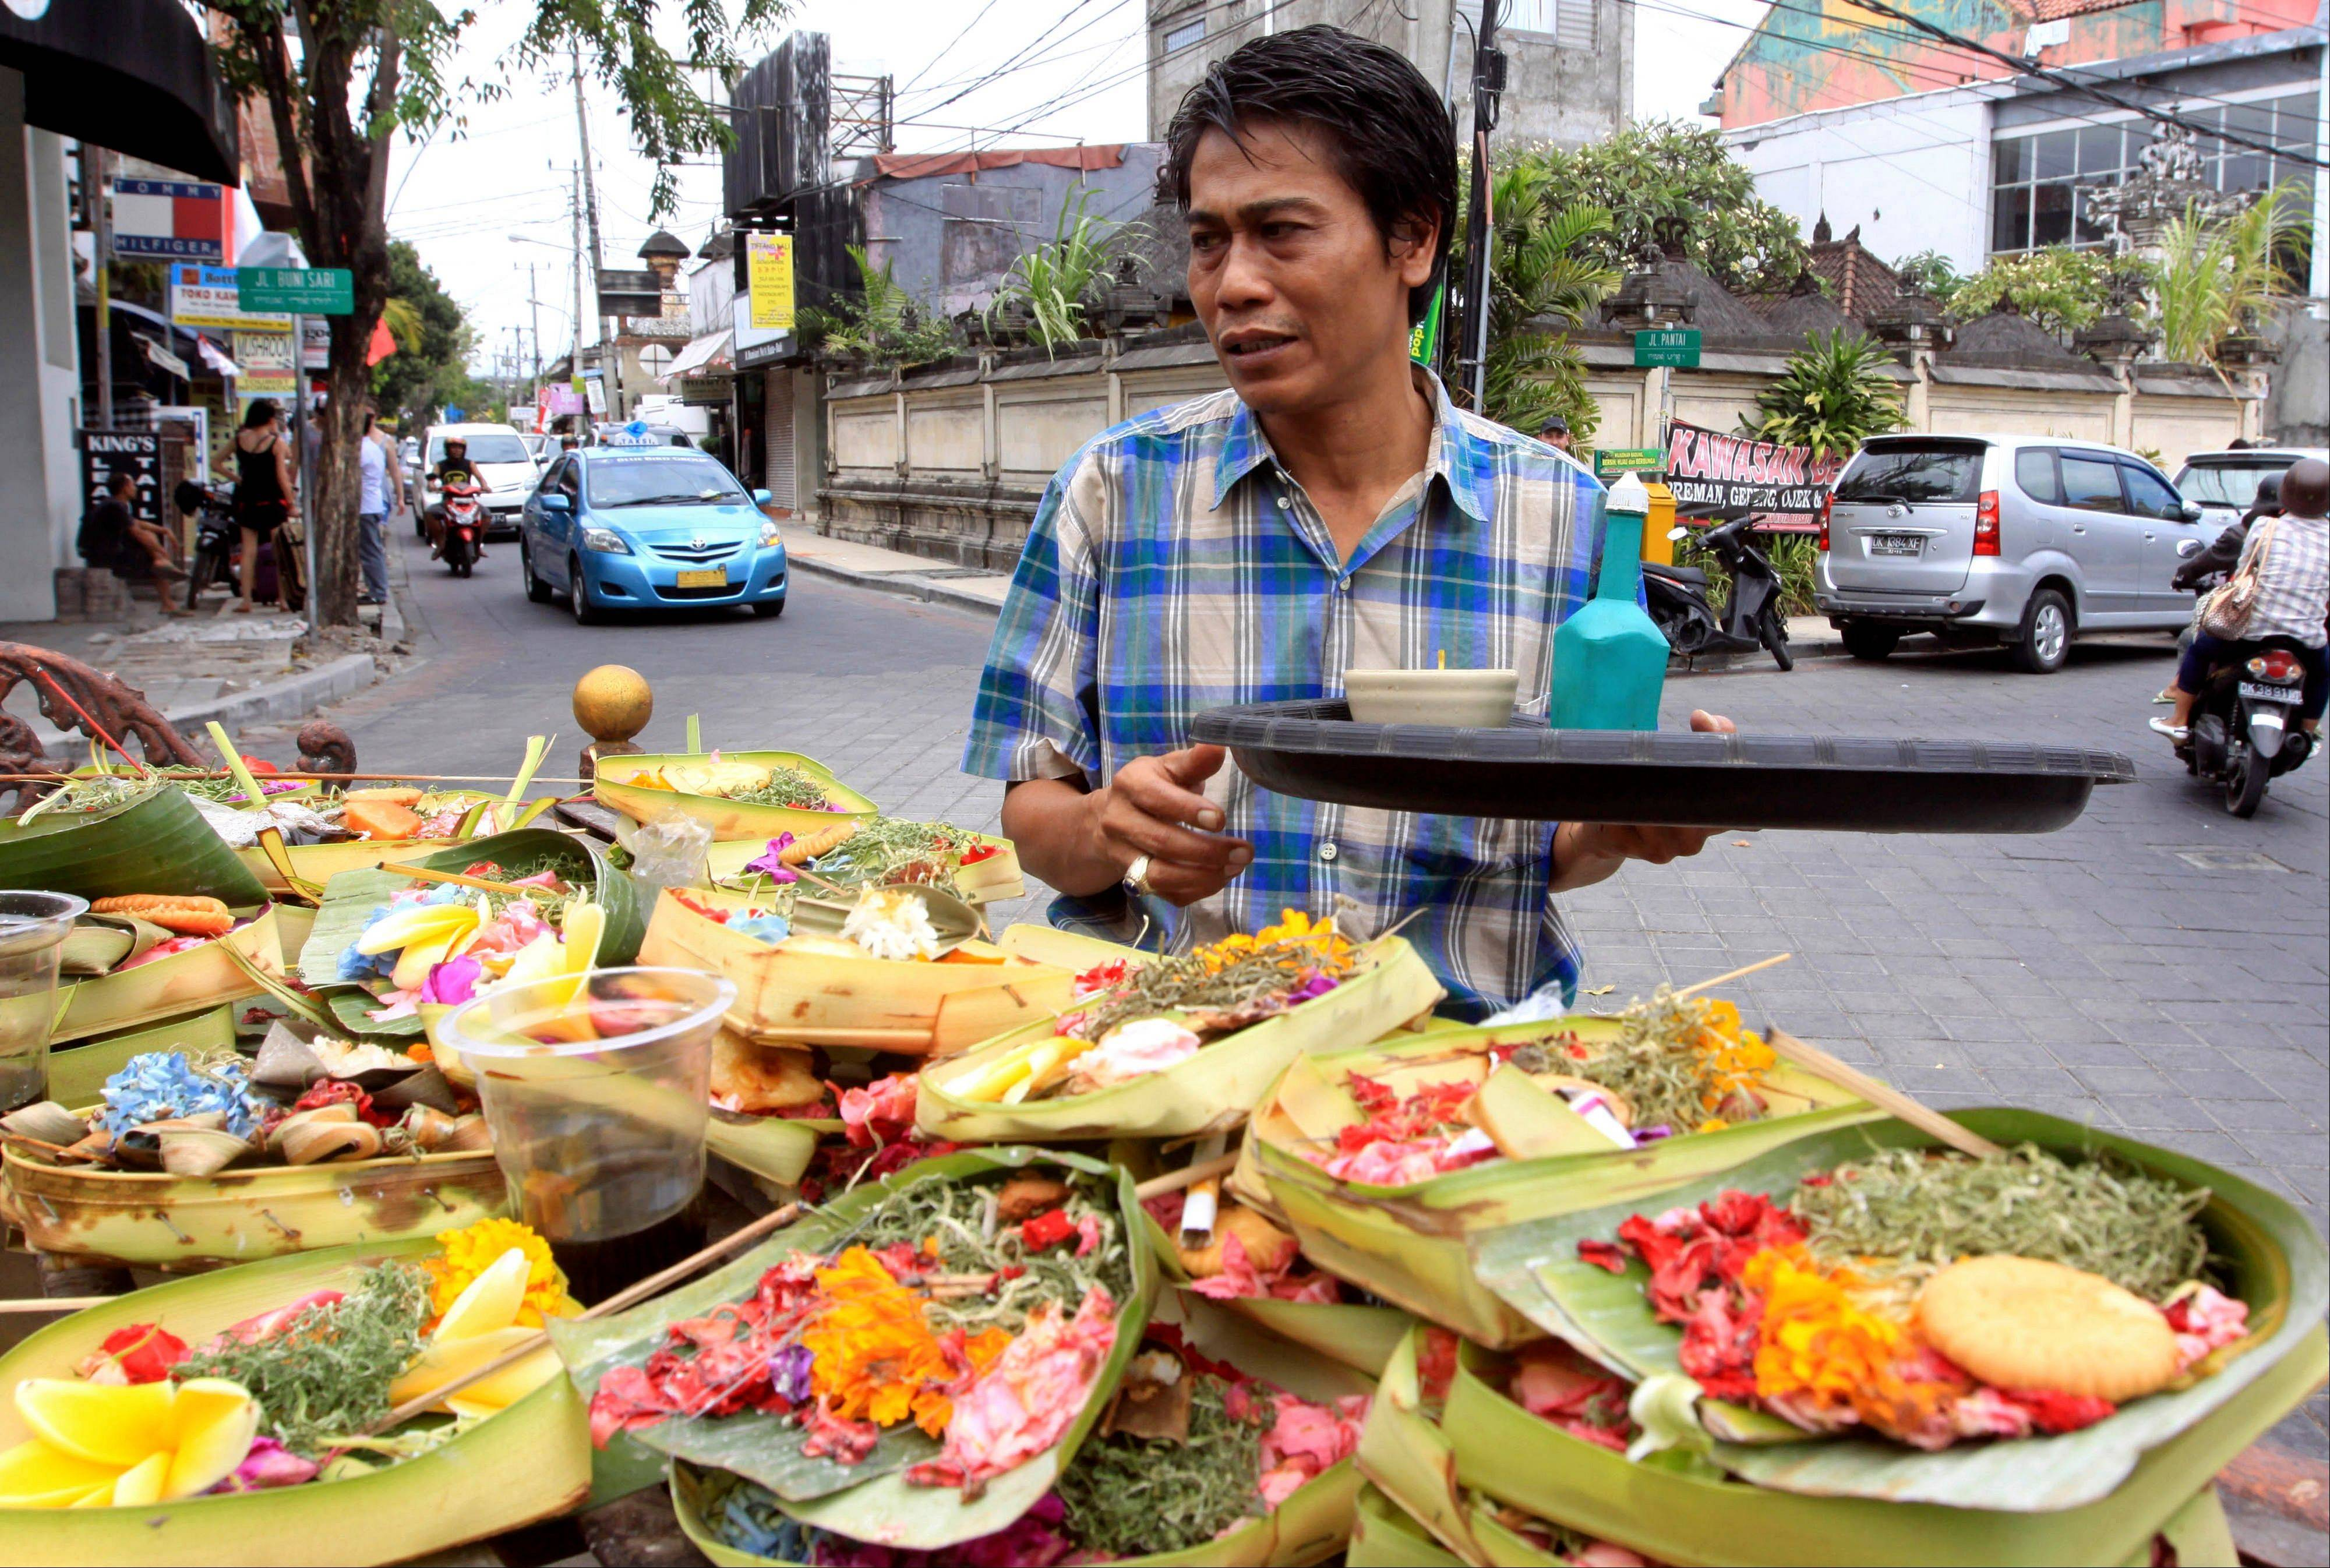 A Balinese man offers food to a local god in Kuta, Bali, Indonesia. It can be hard to find Bali's serenity and beauty amid the villas with infinity pools and ads for Italian restaurants.